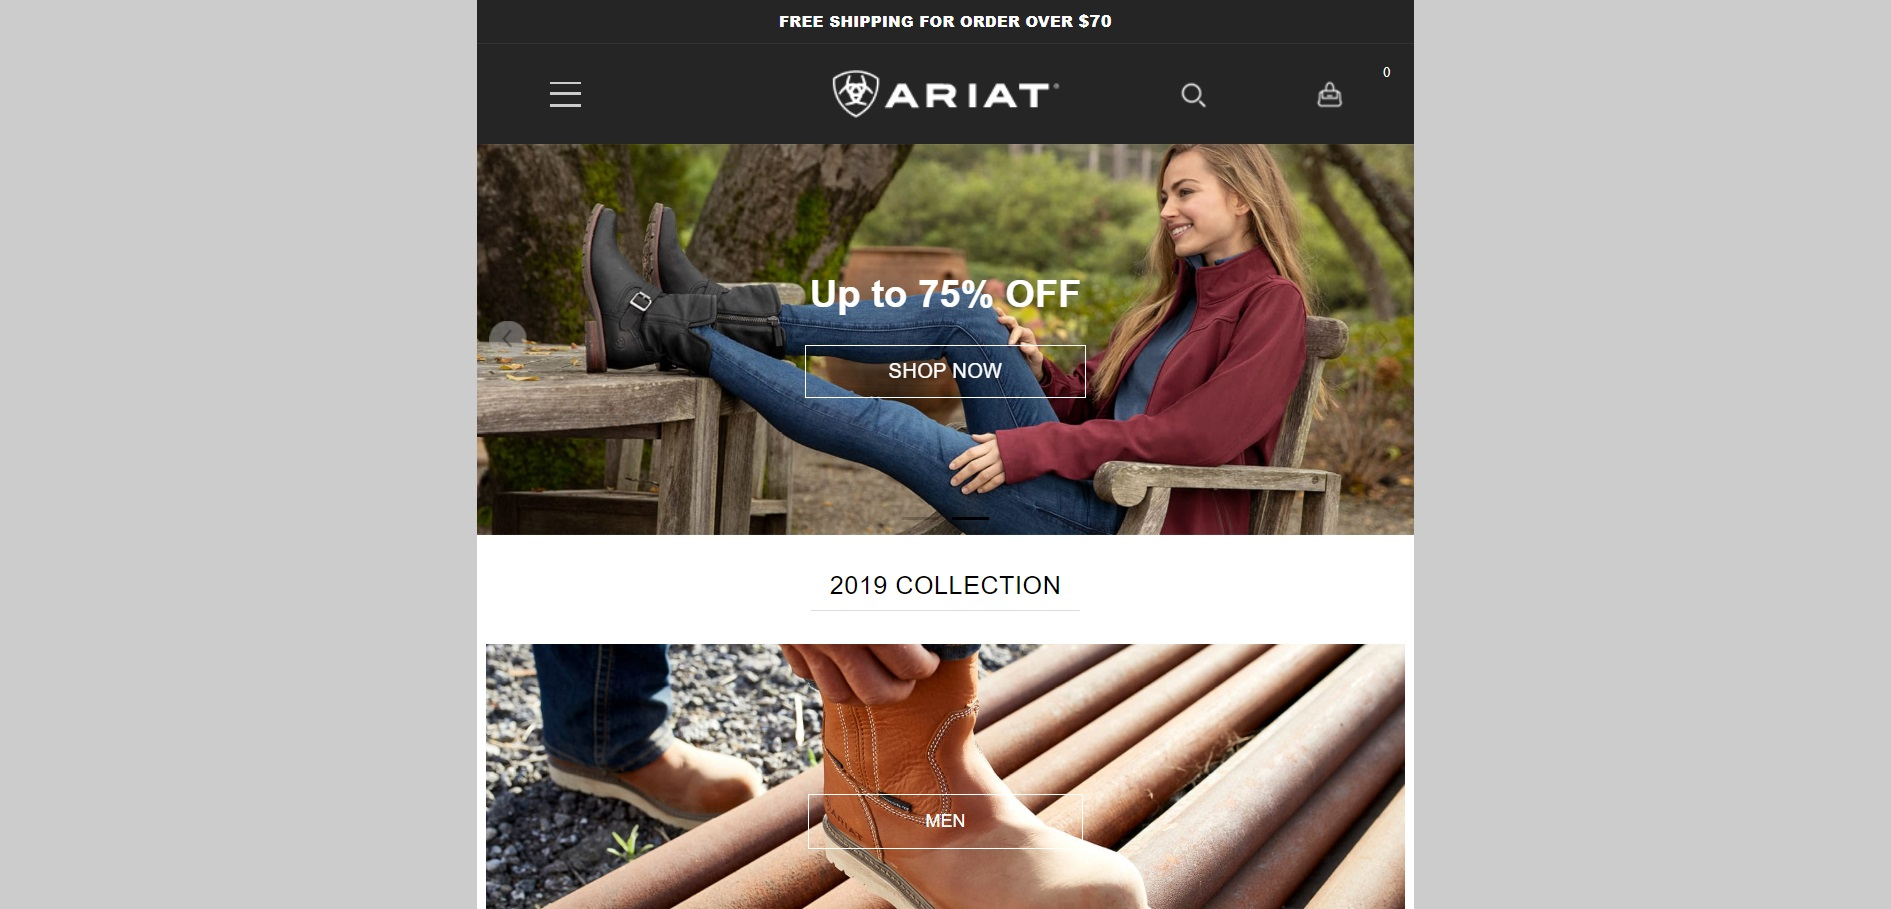 Is Ariatus.com a Scam? See the Review of the Online Store